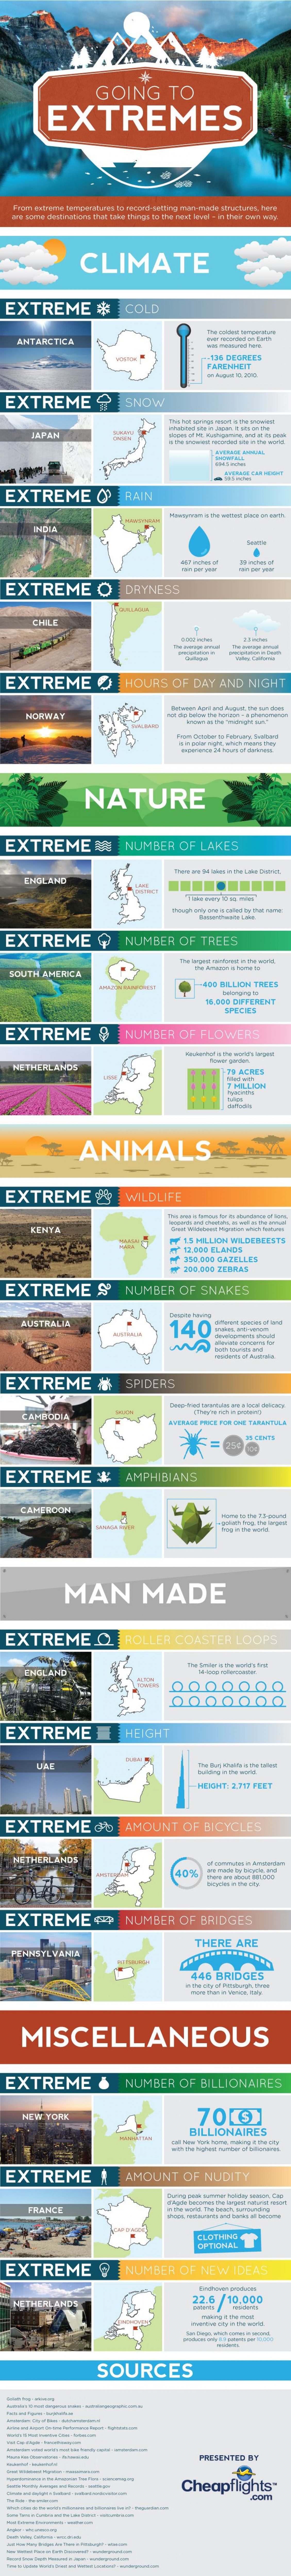 Going to Extremes  Infographic